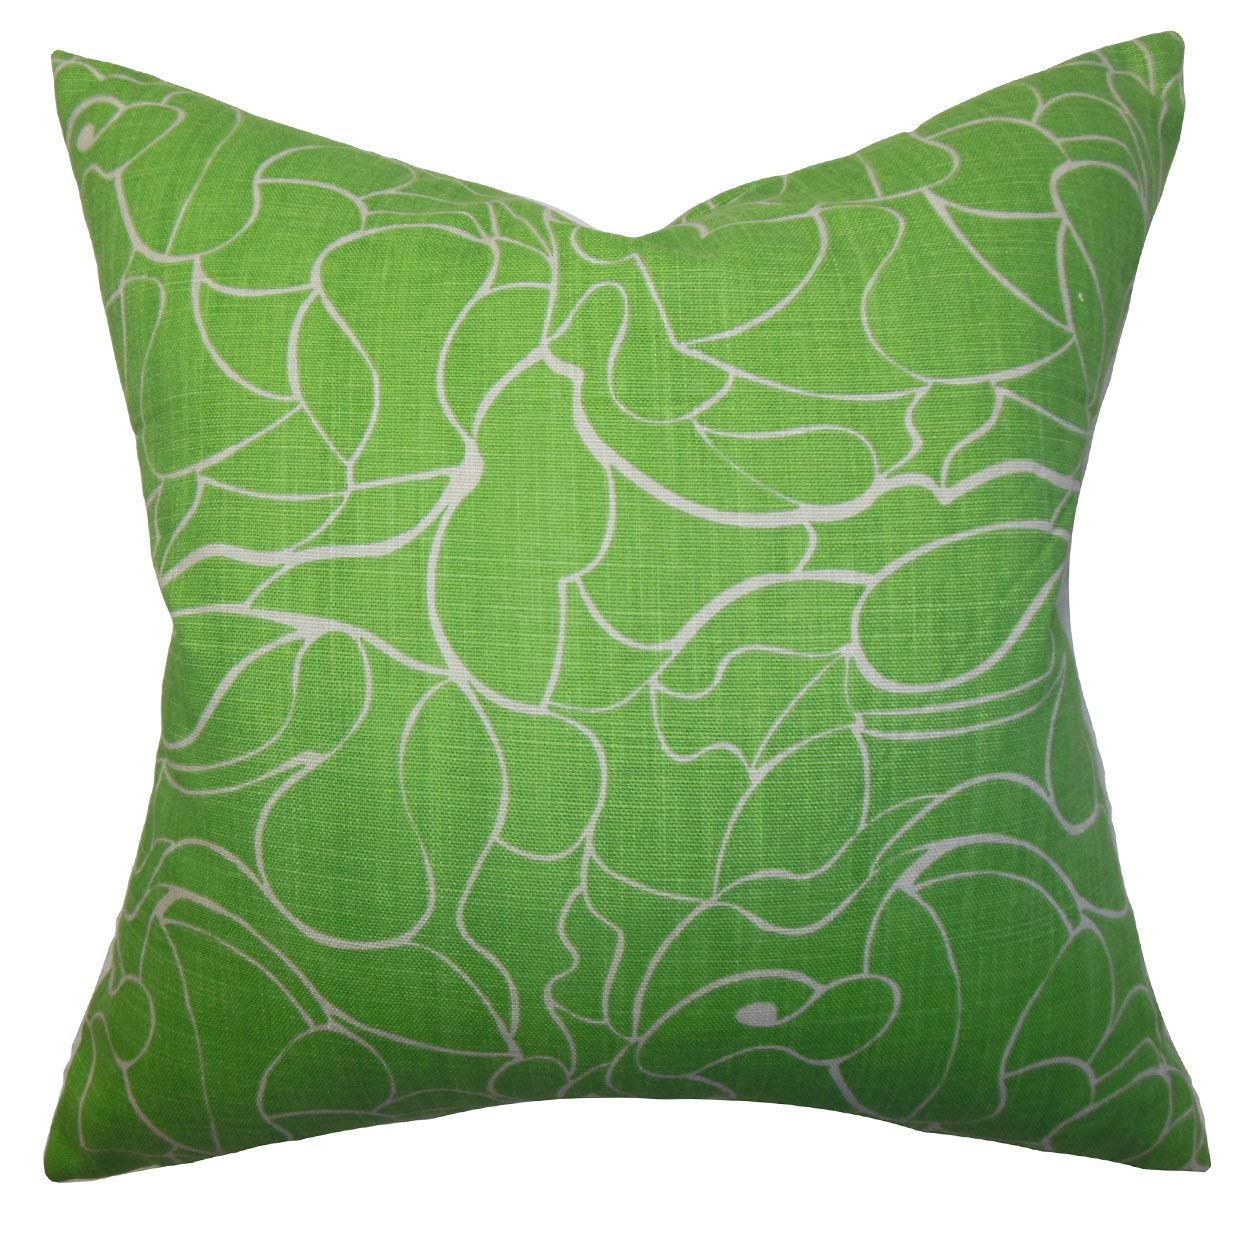 The Pillow Collection Eames Floral Green Down Down Filled Throw Pillow